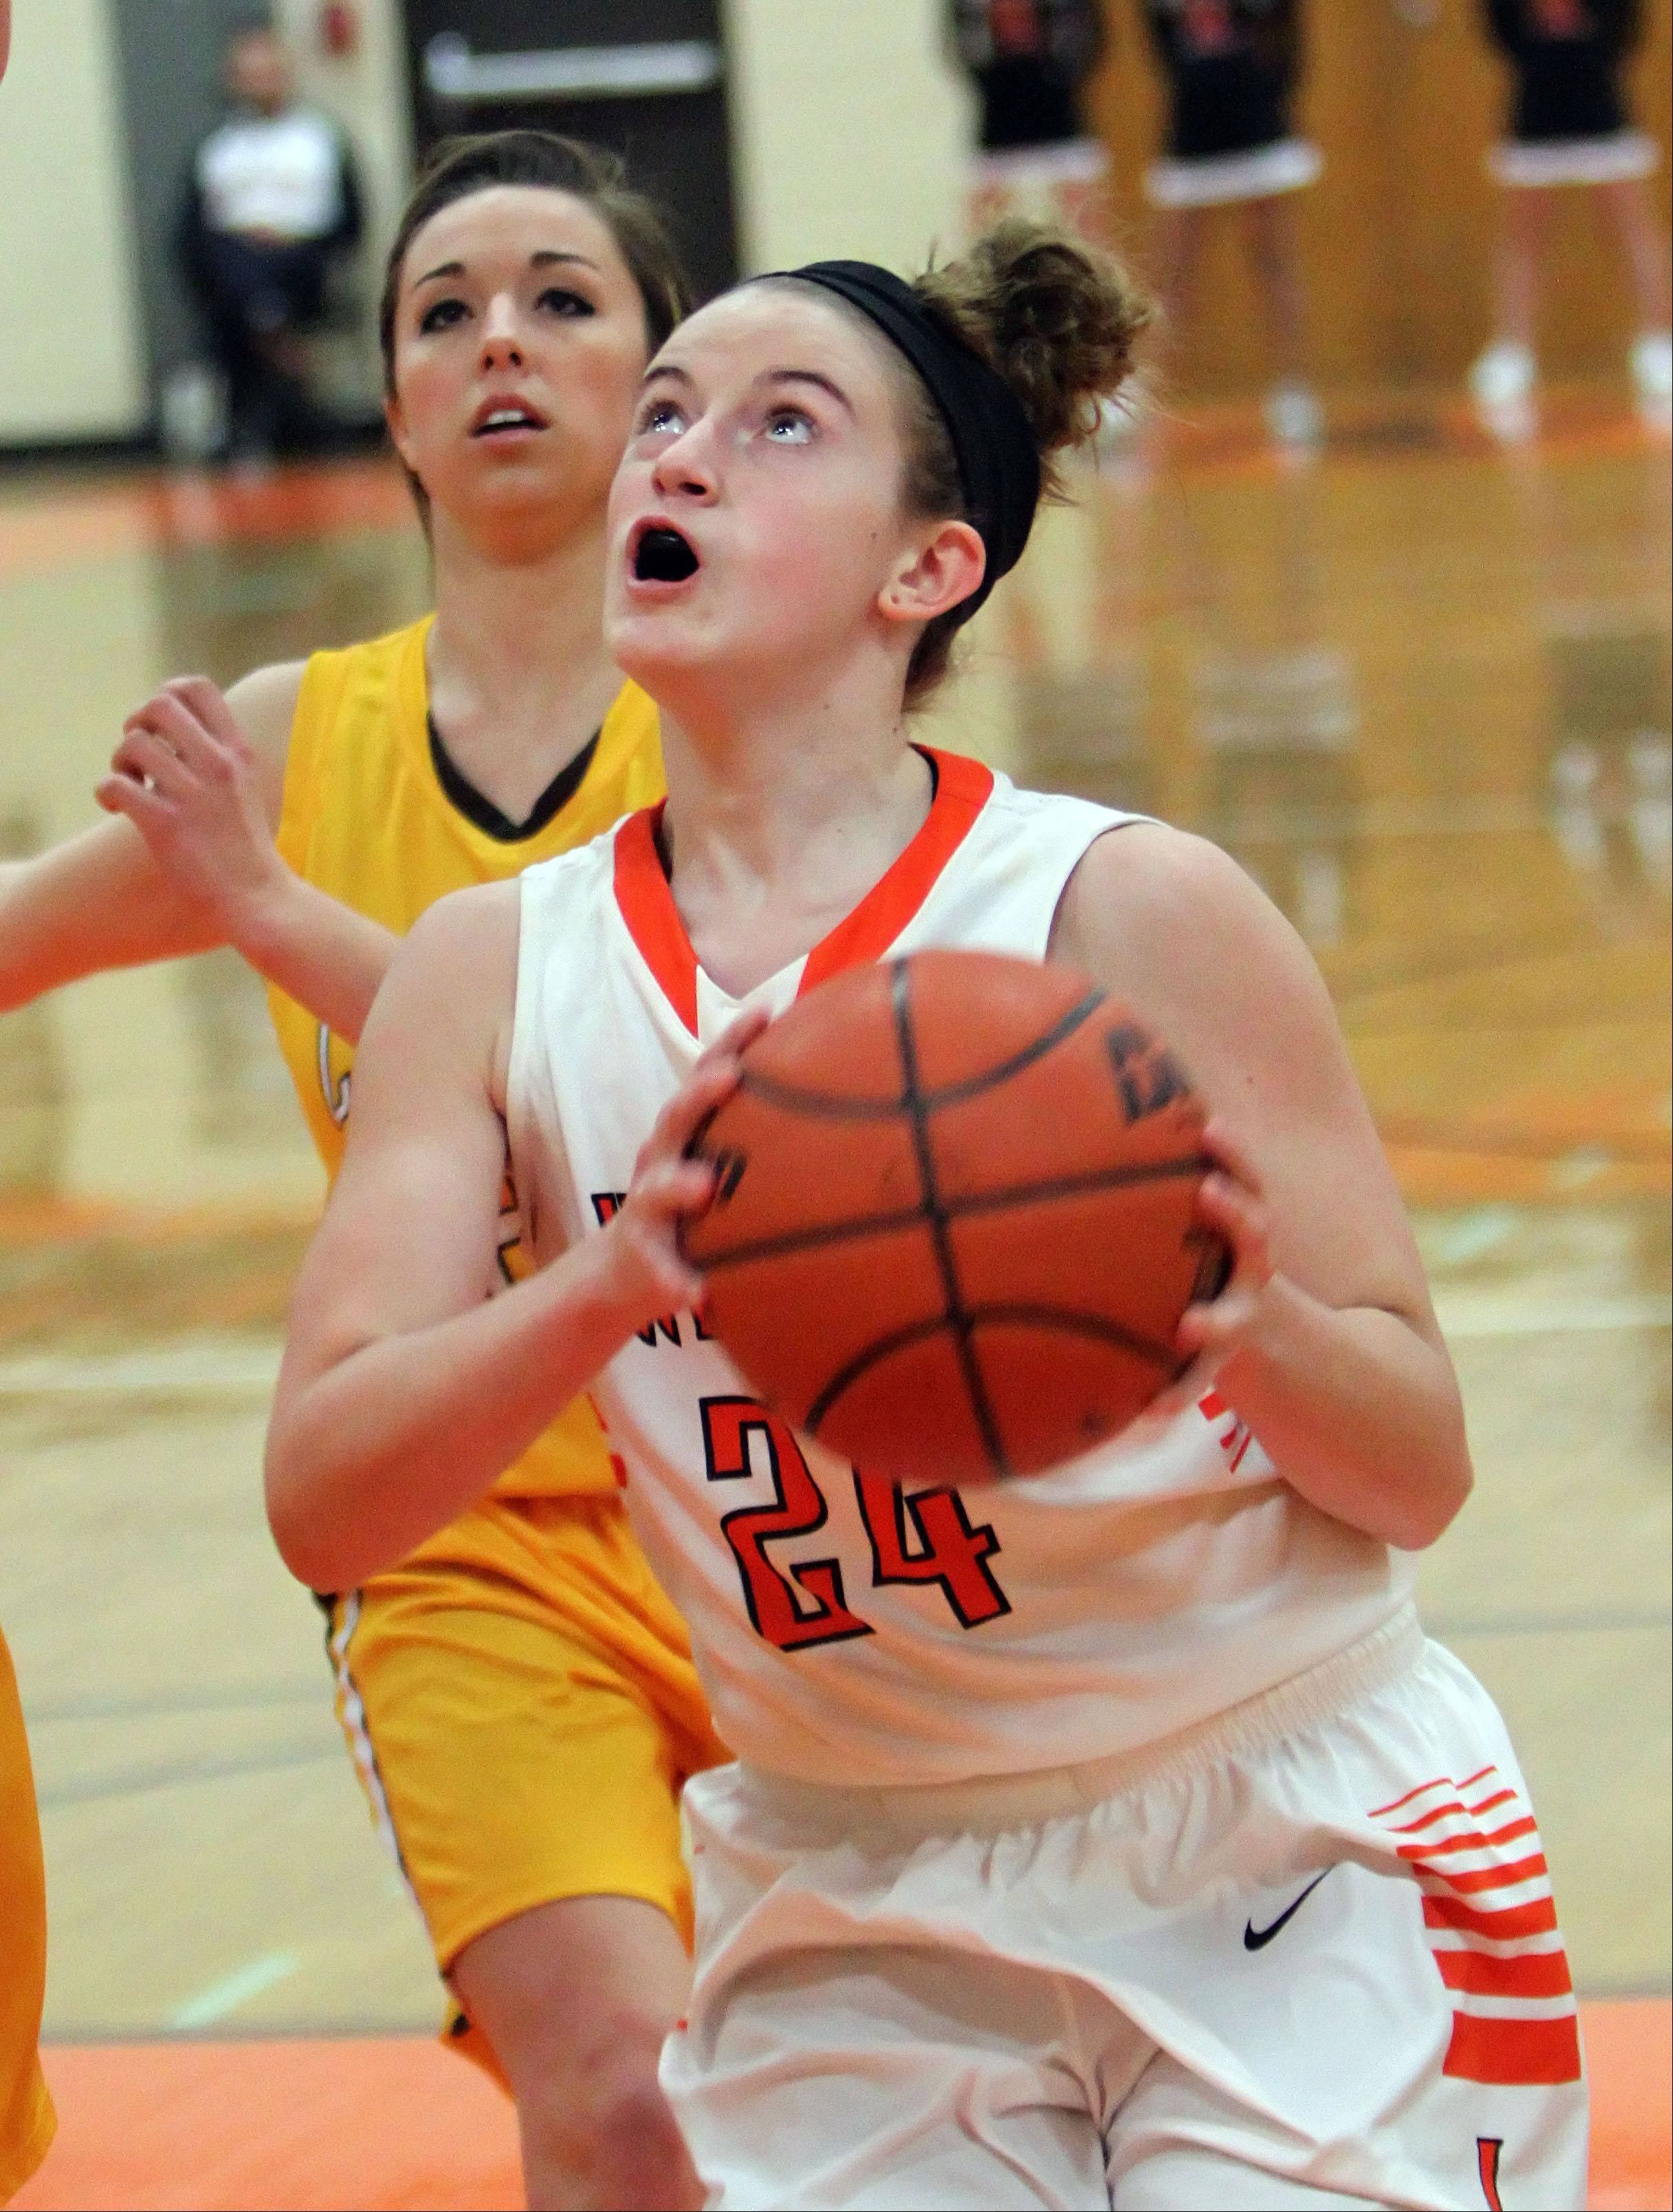 Libertyville's Rosie Lynch, right, drives on Carmel's Nicole Bitter on Wednesday night at Libertyville.